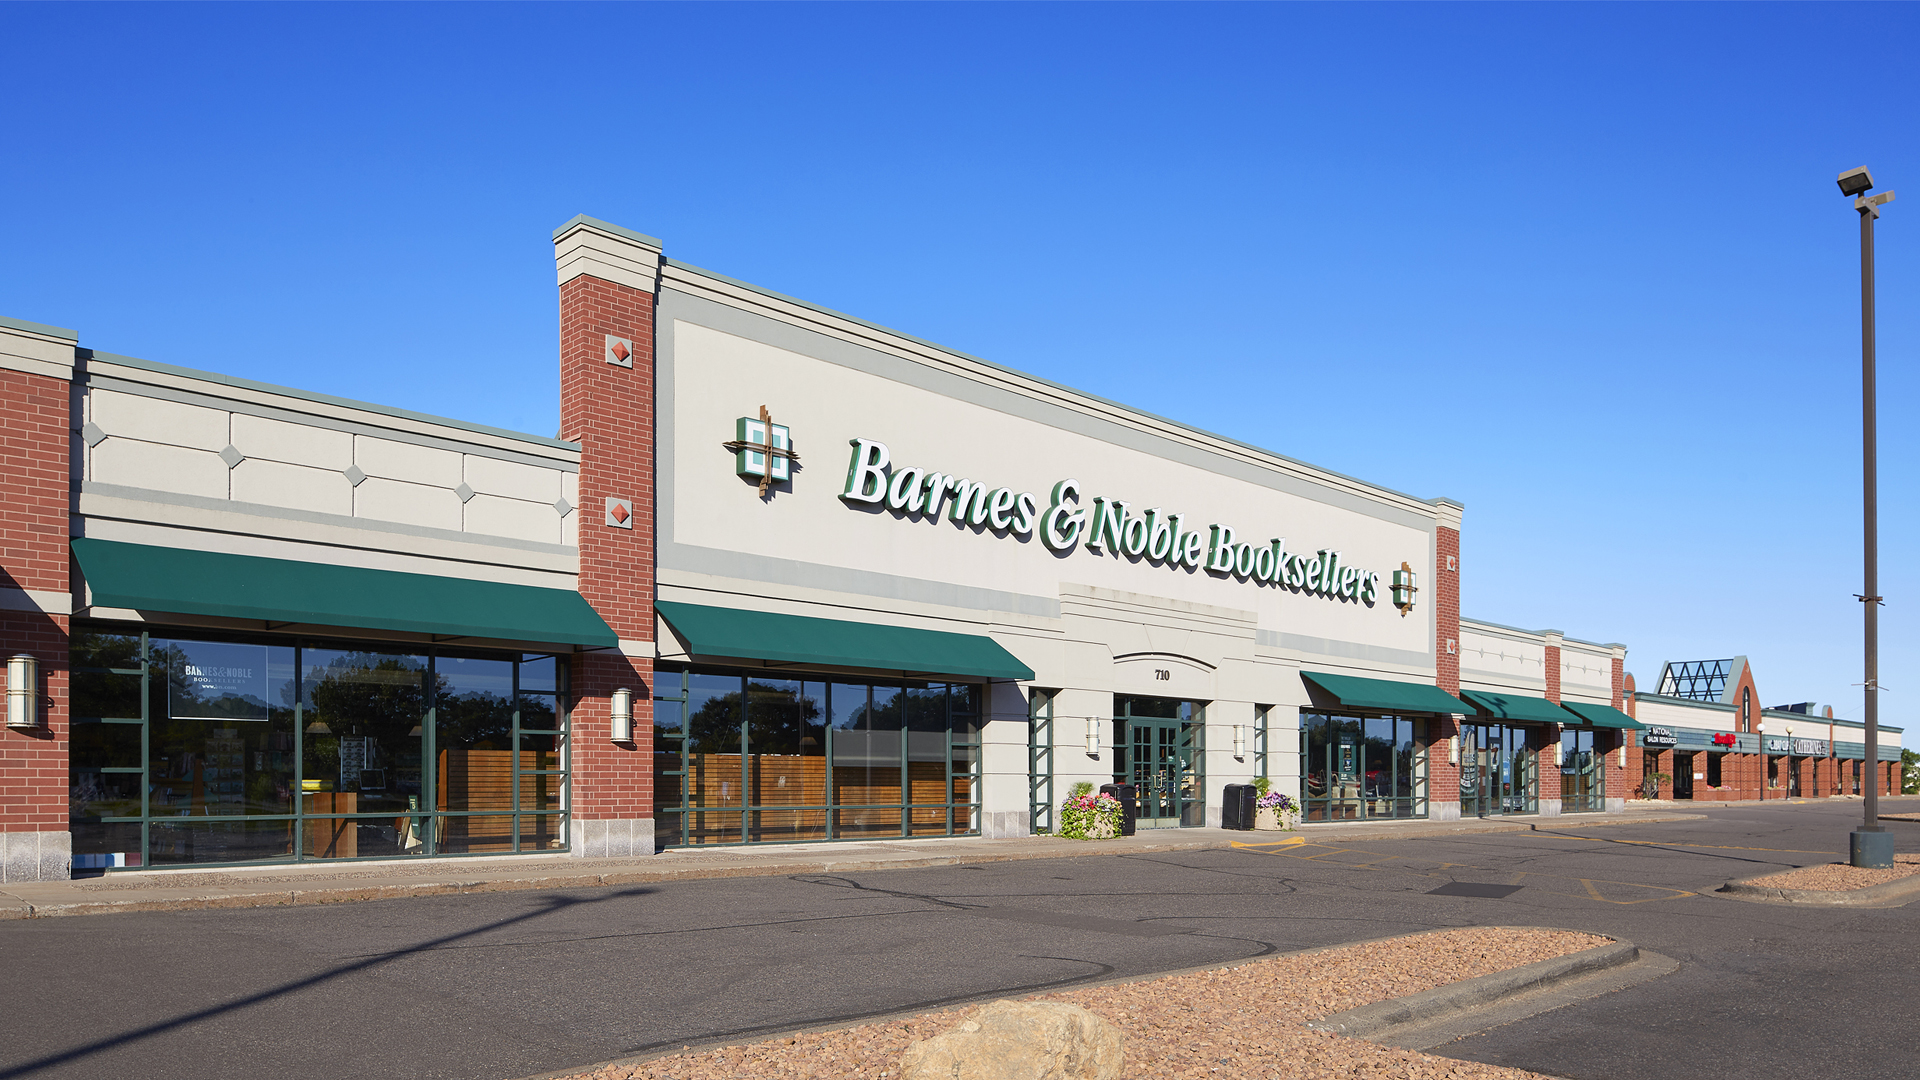 Northcourt Commons Retail Shopping Center Blaine MN exterior view featuring Barnes and Noble